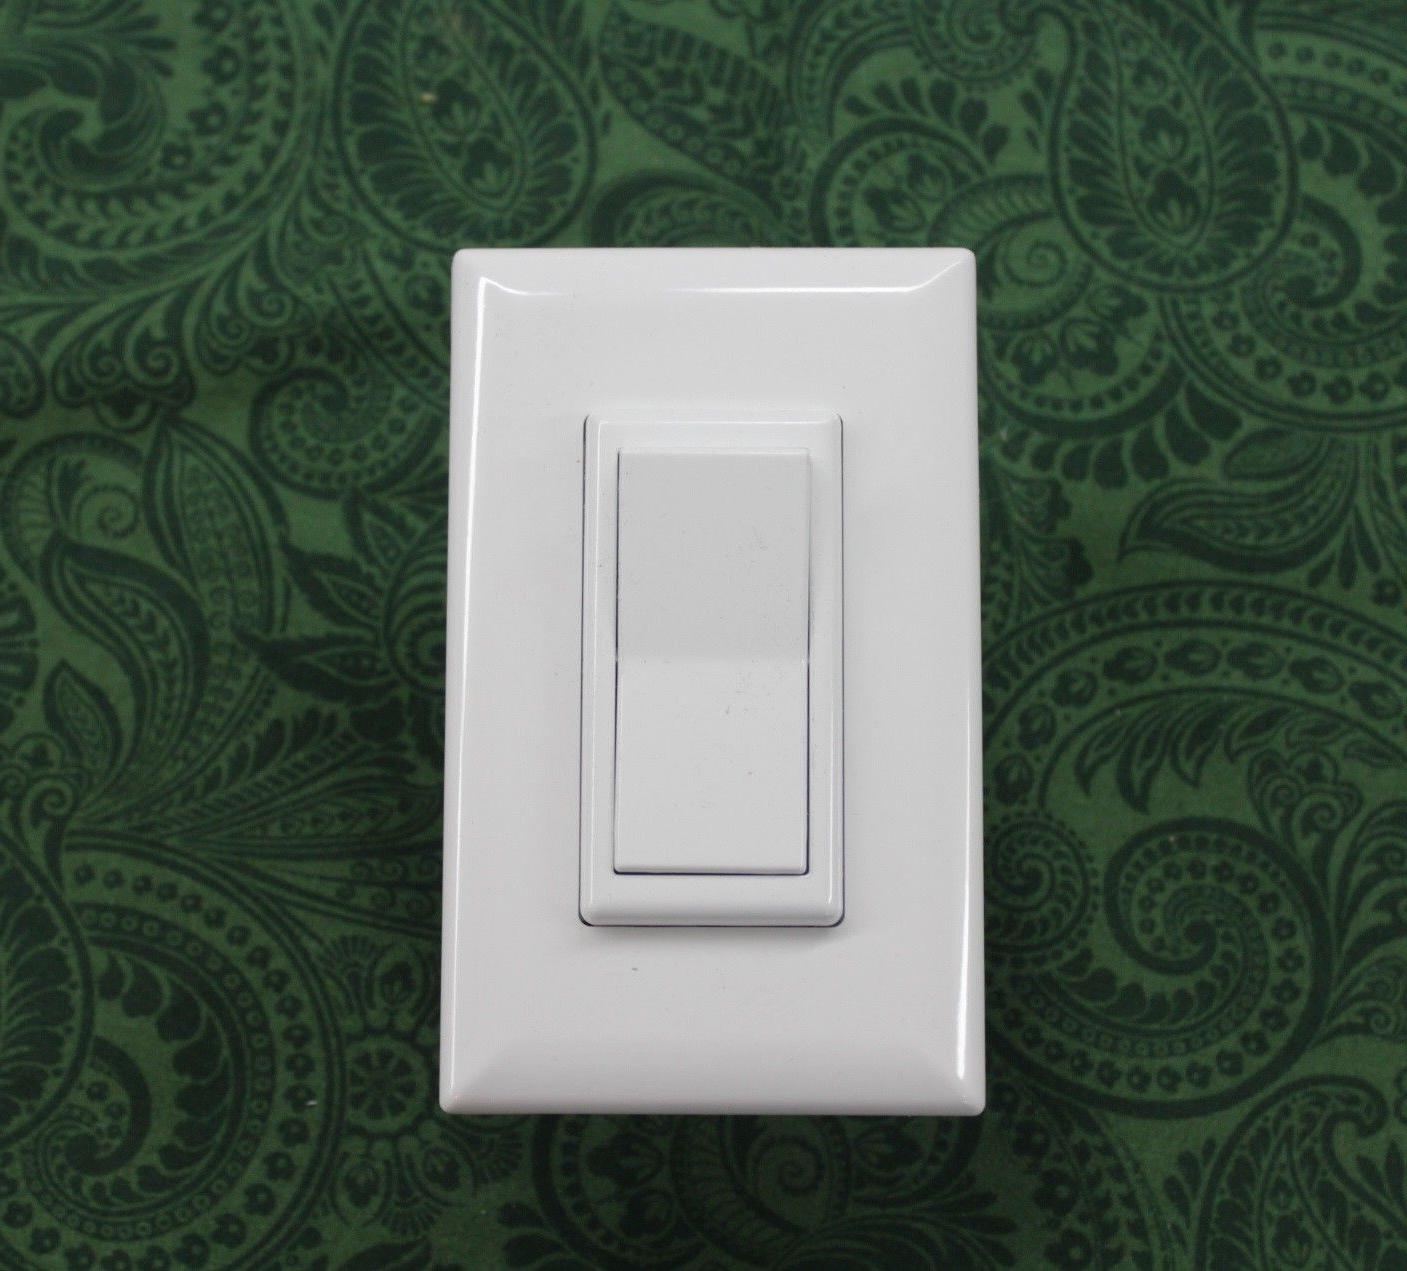 mobile home self contained decorator toggle light